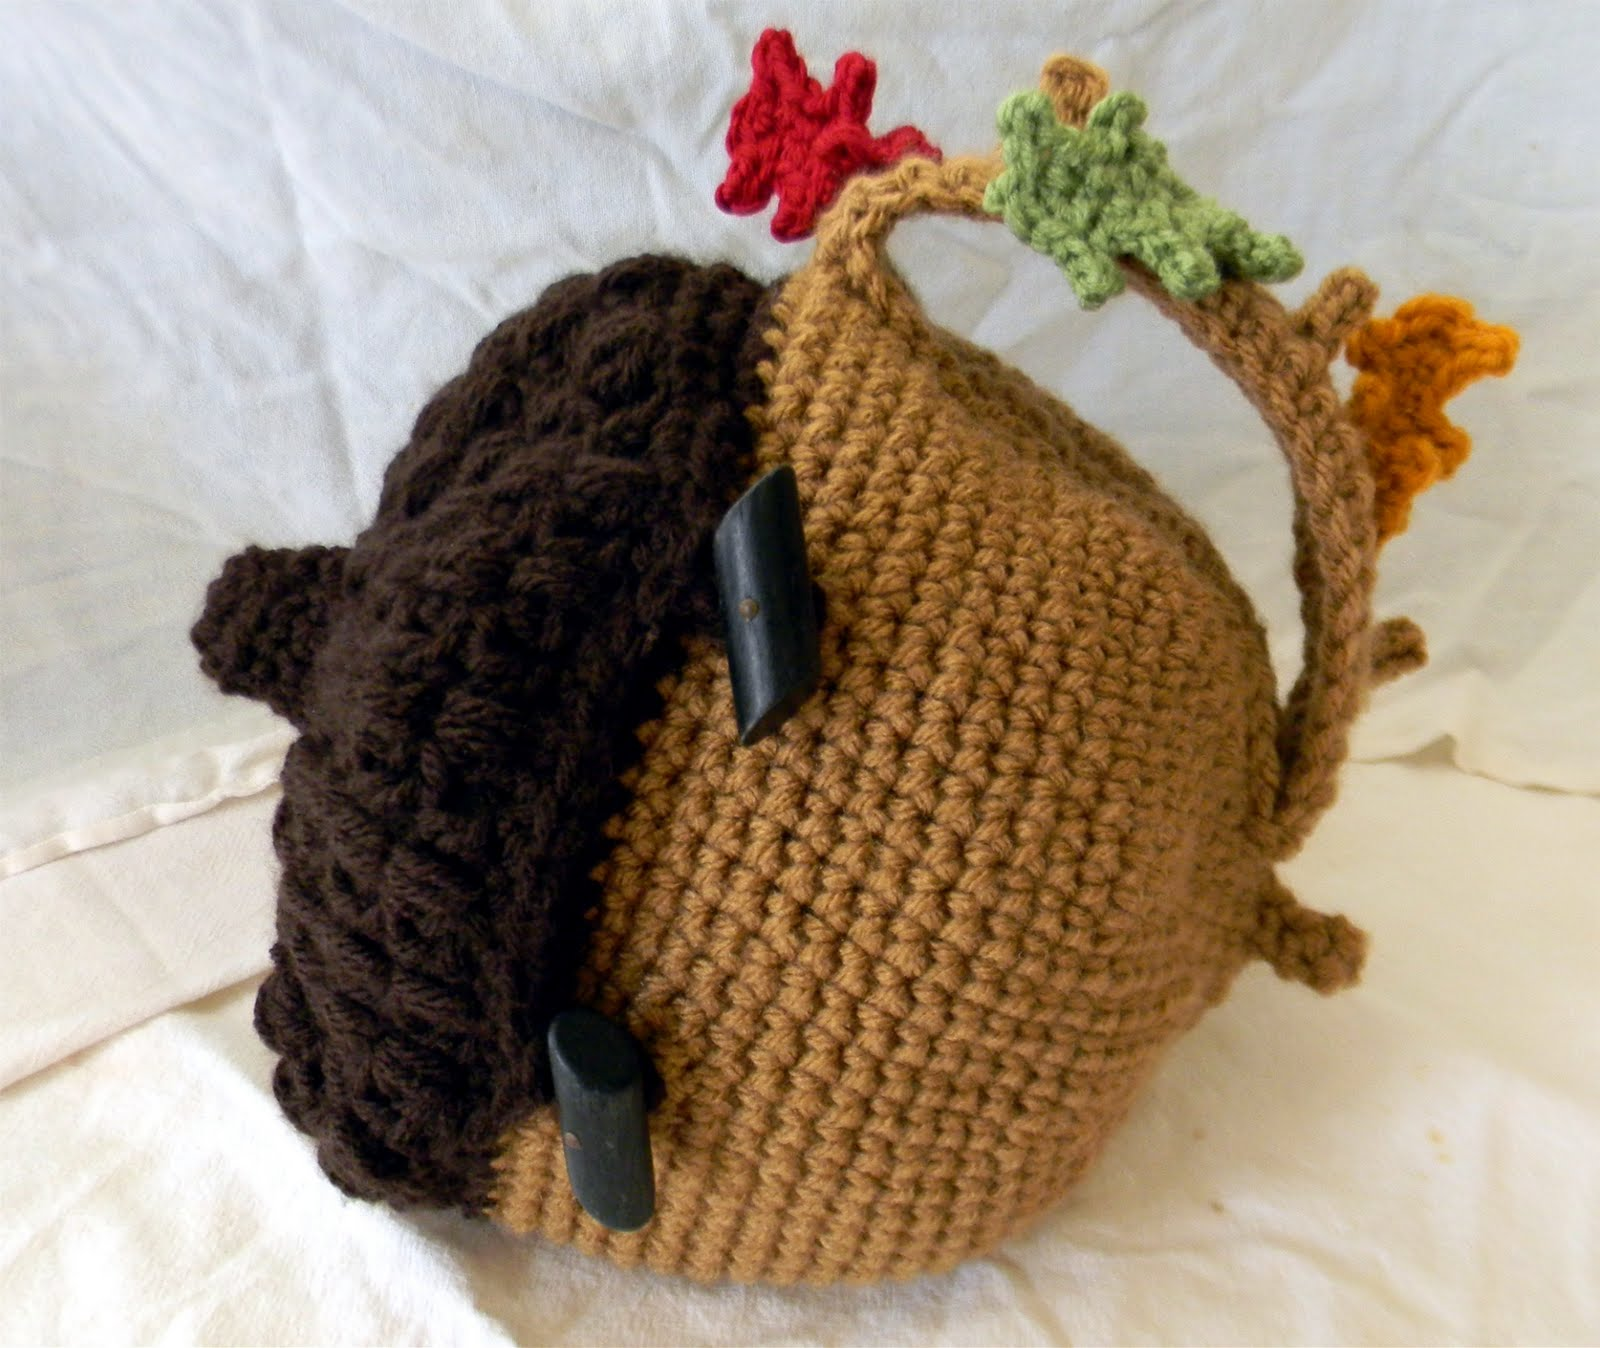 Knitting Pattern For Acorn Hat : Bizzy Crochet: Acorn Bag~ Etsy Exclusive